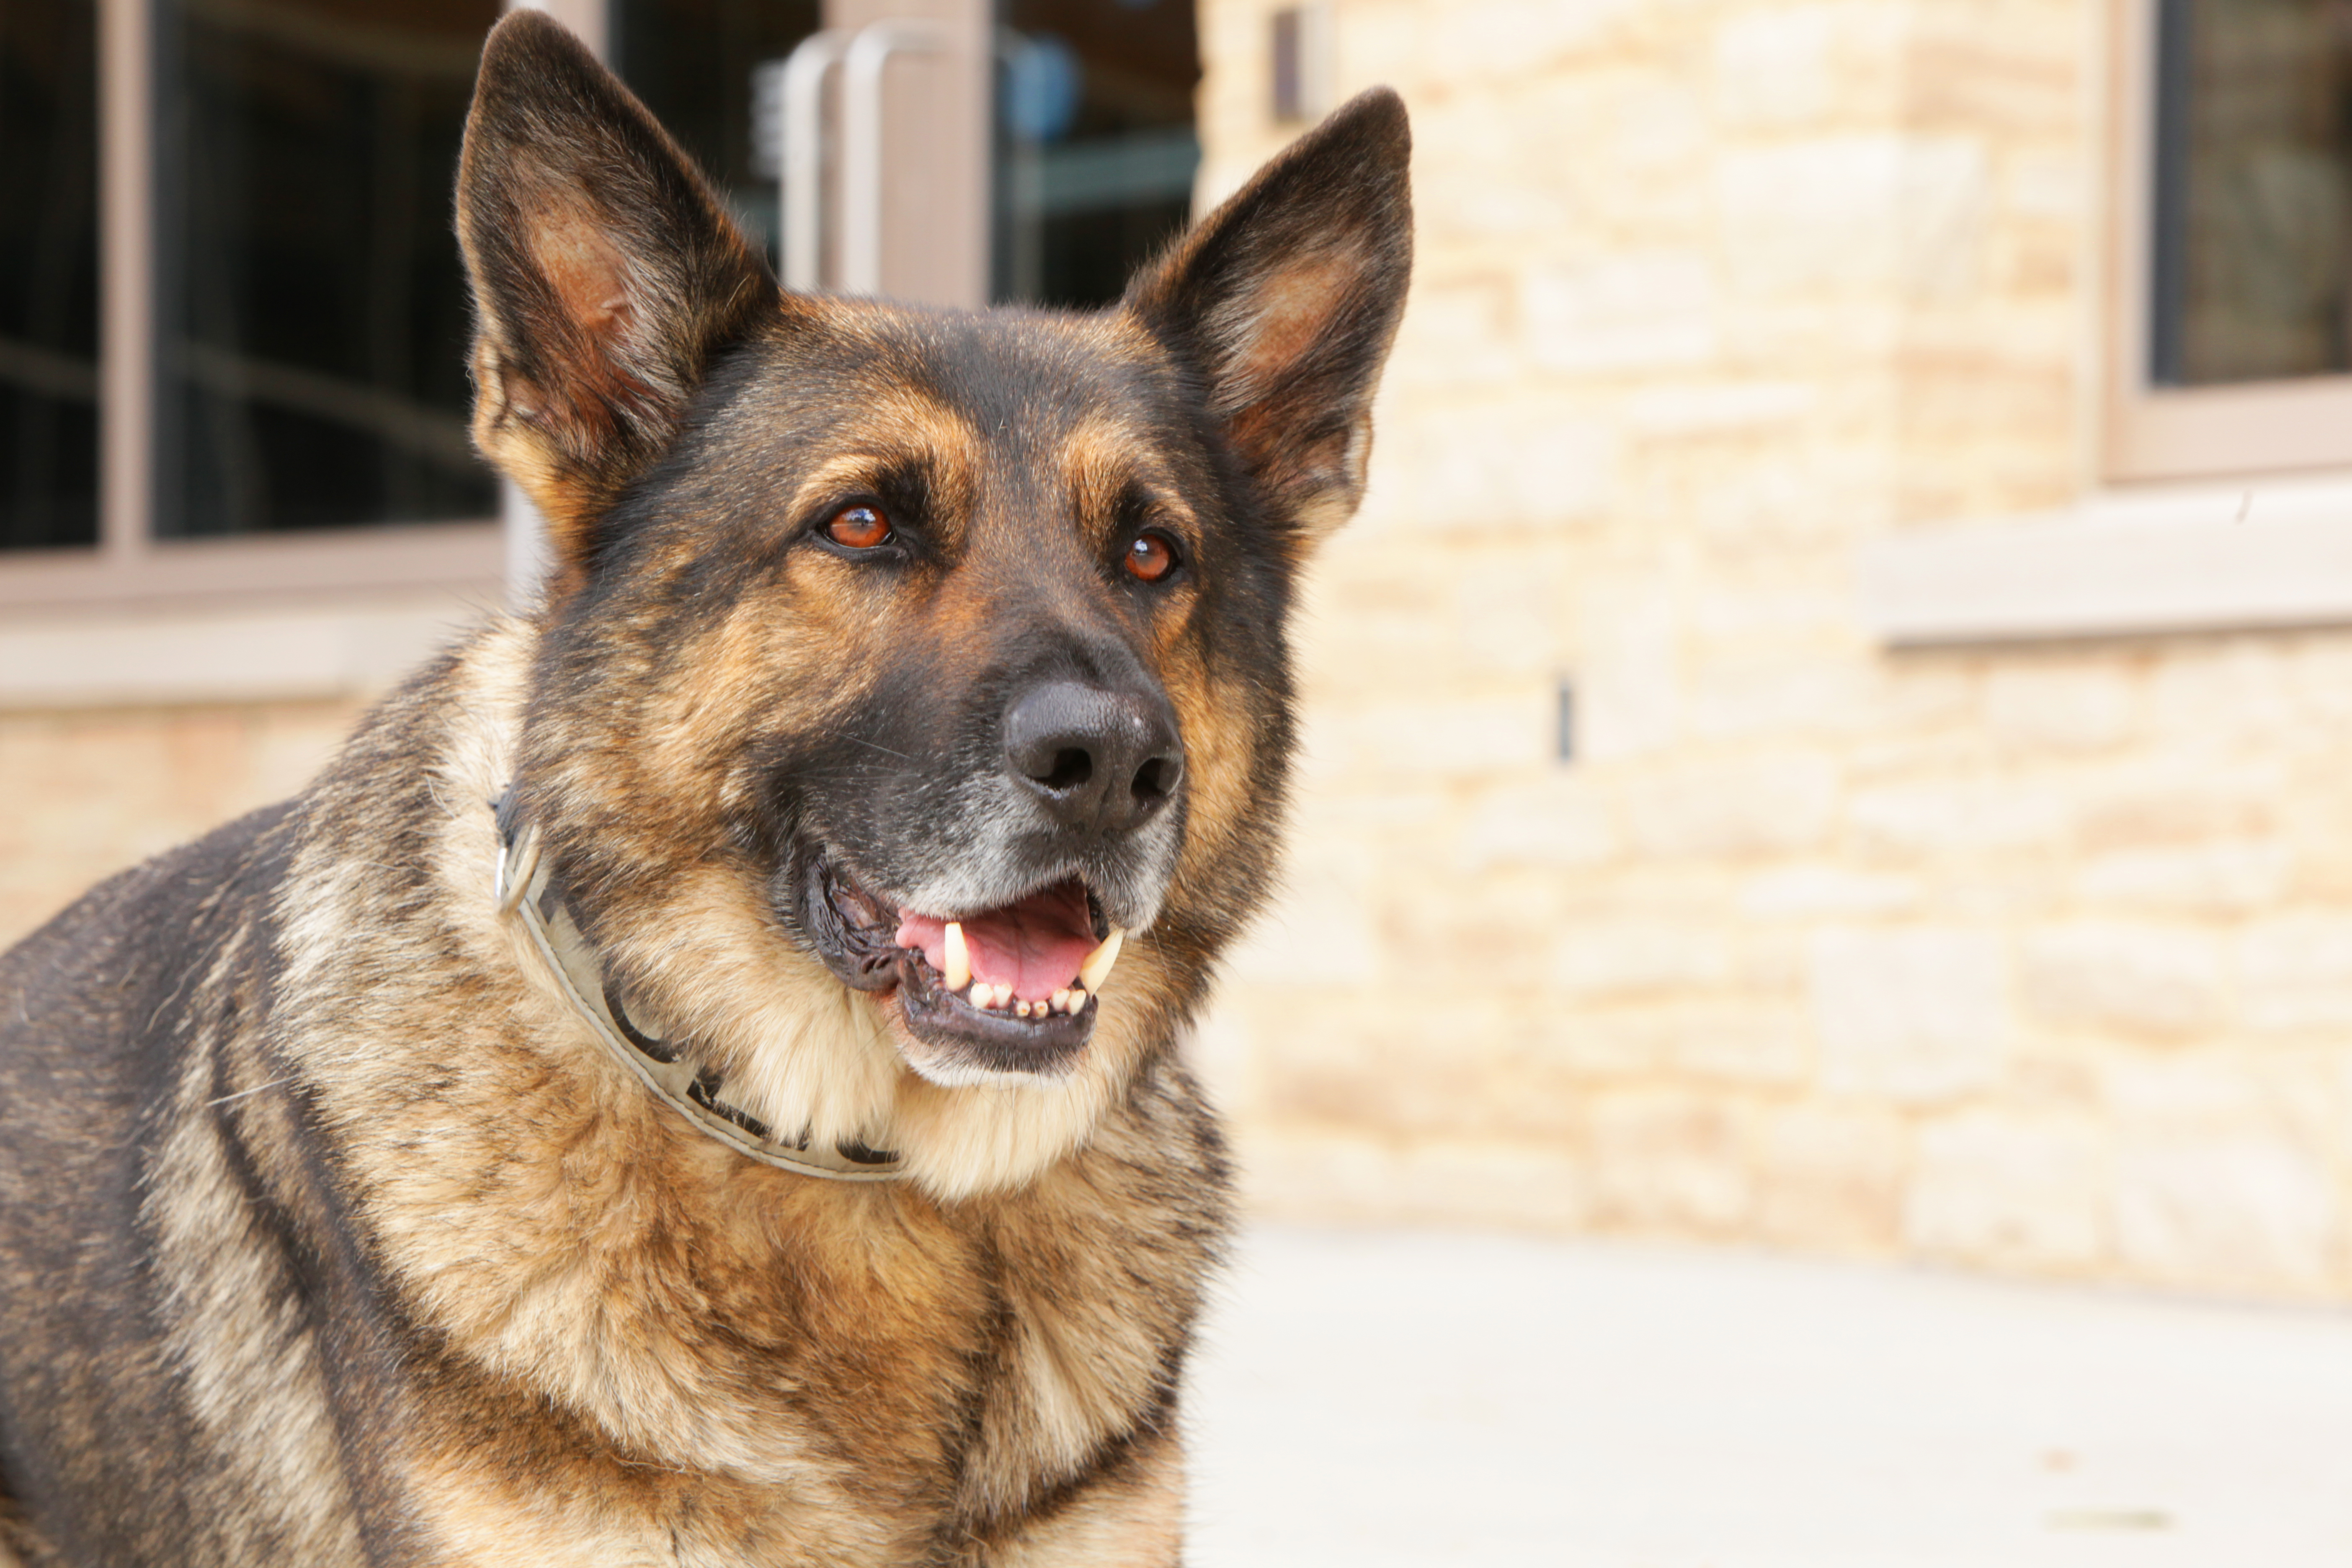 K9 Odin Uwpd Bomb And Tracking Dog Put To Rest Uwpd